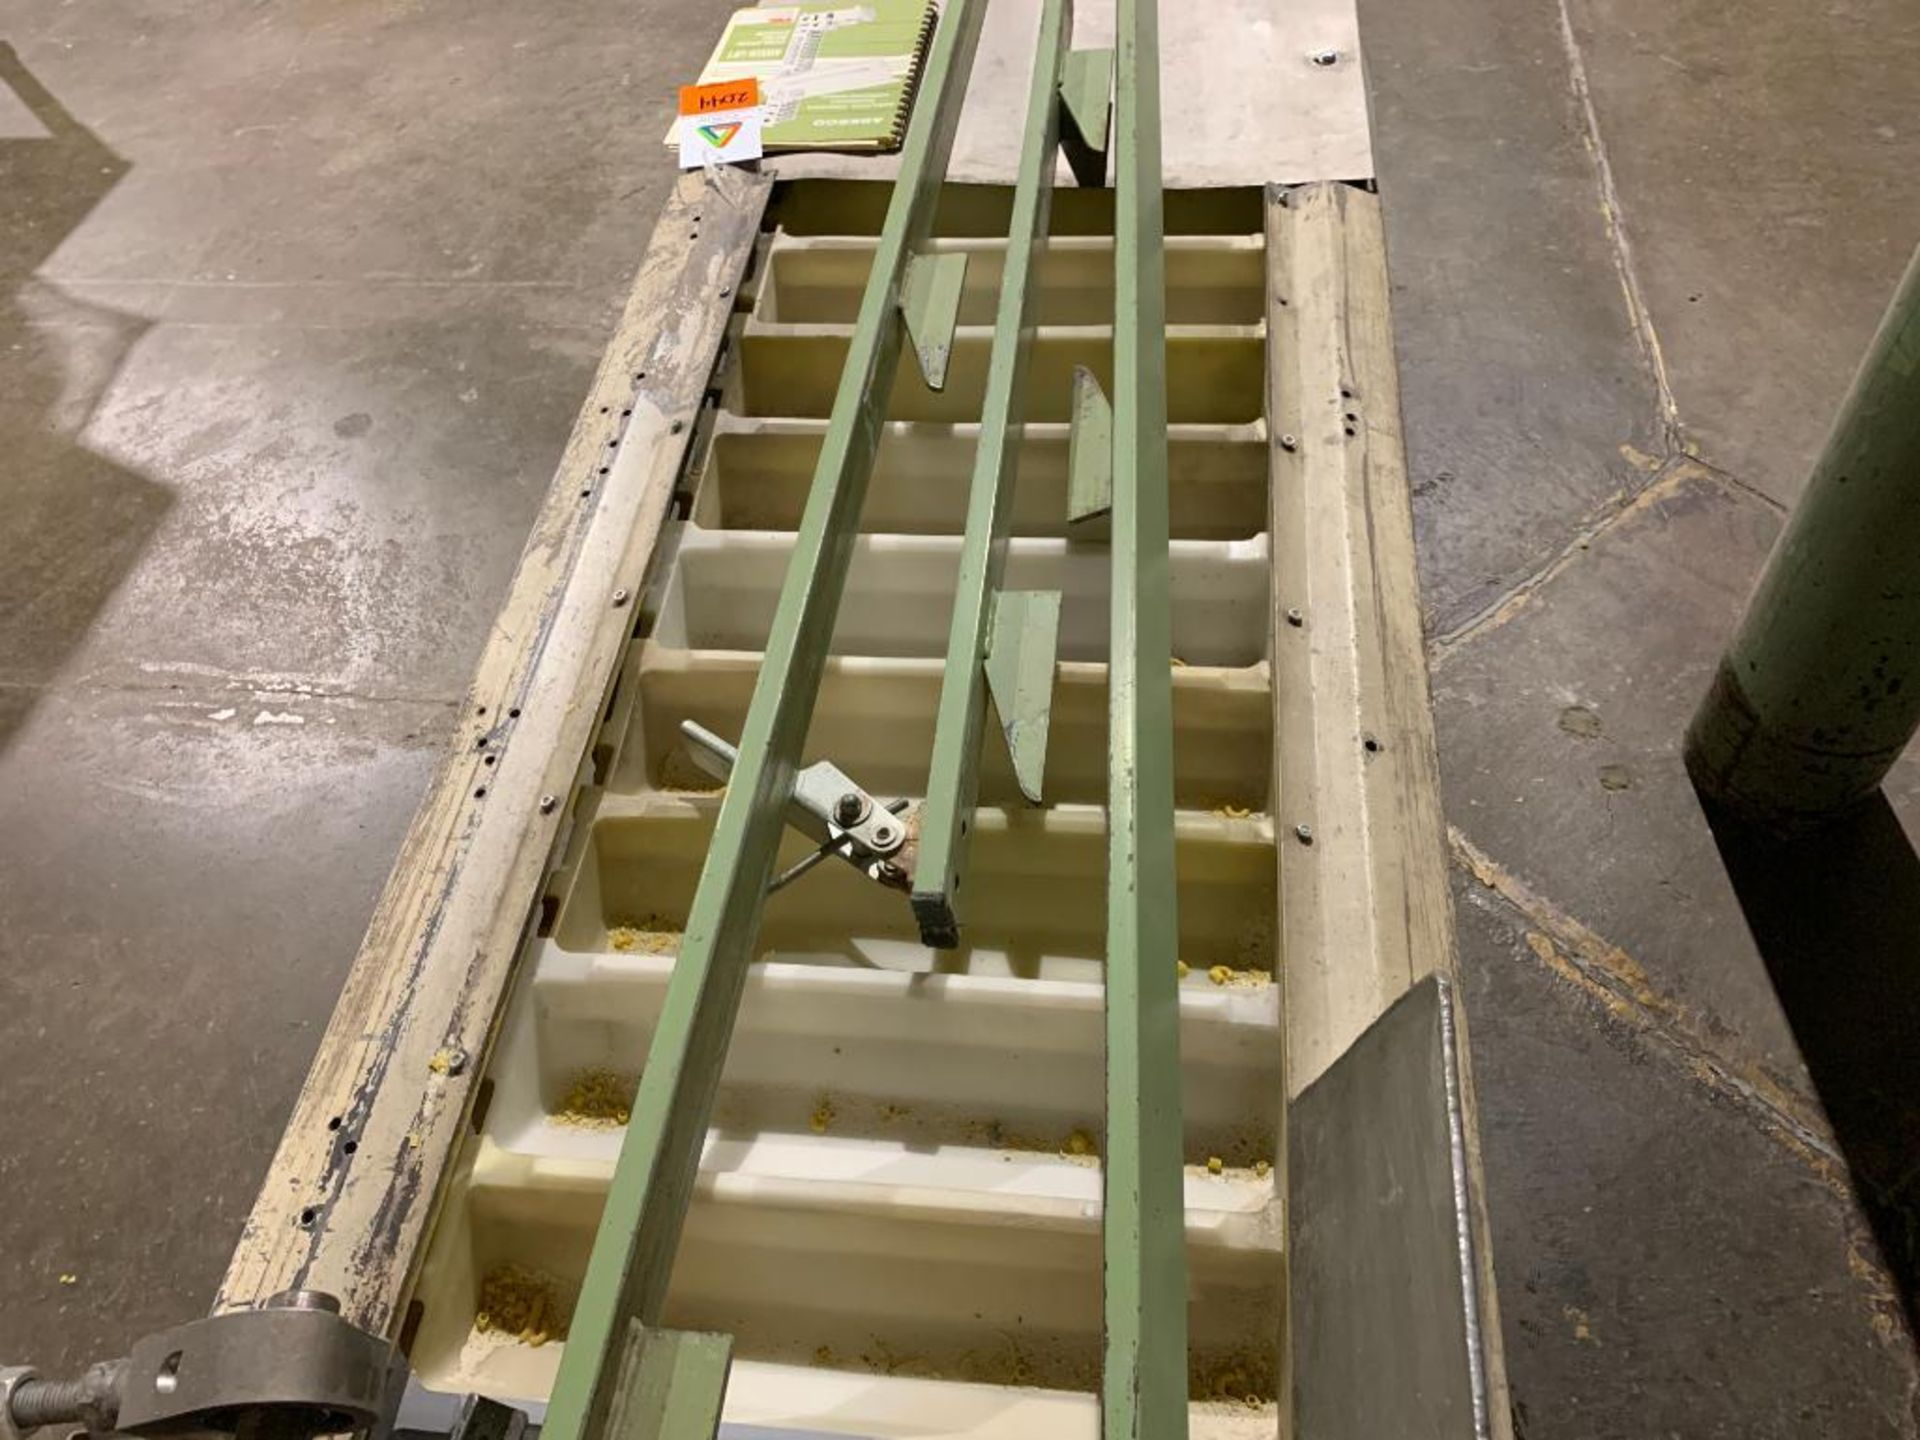 Aseeco overlapping bucket elevator, model ALS-0-18-CP - Image 8 of 12